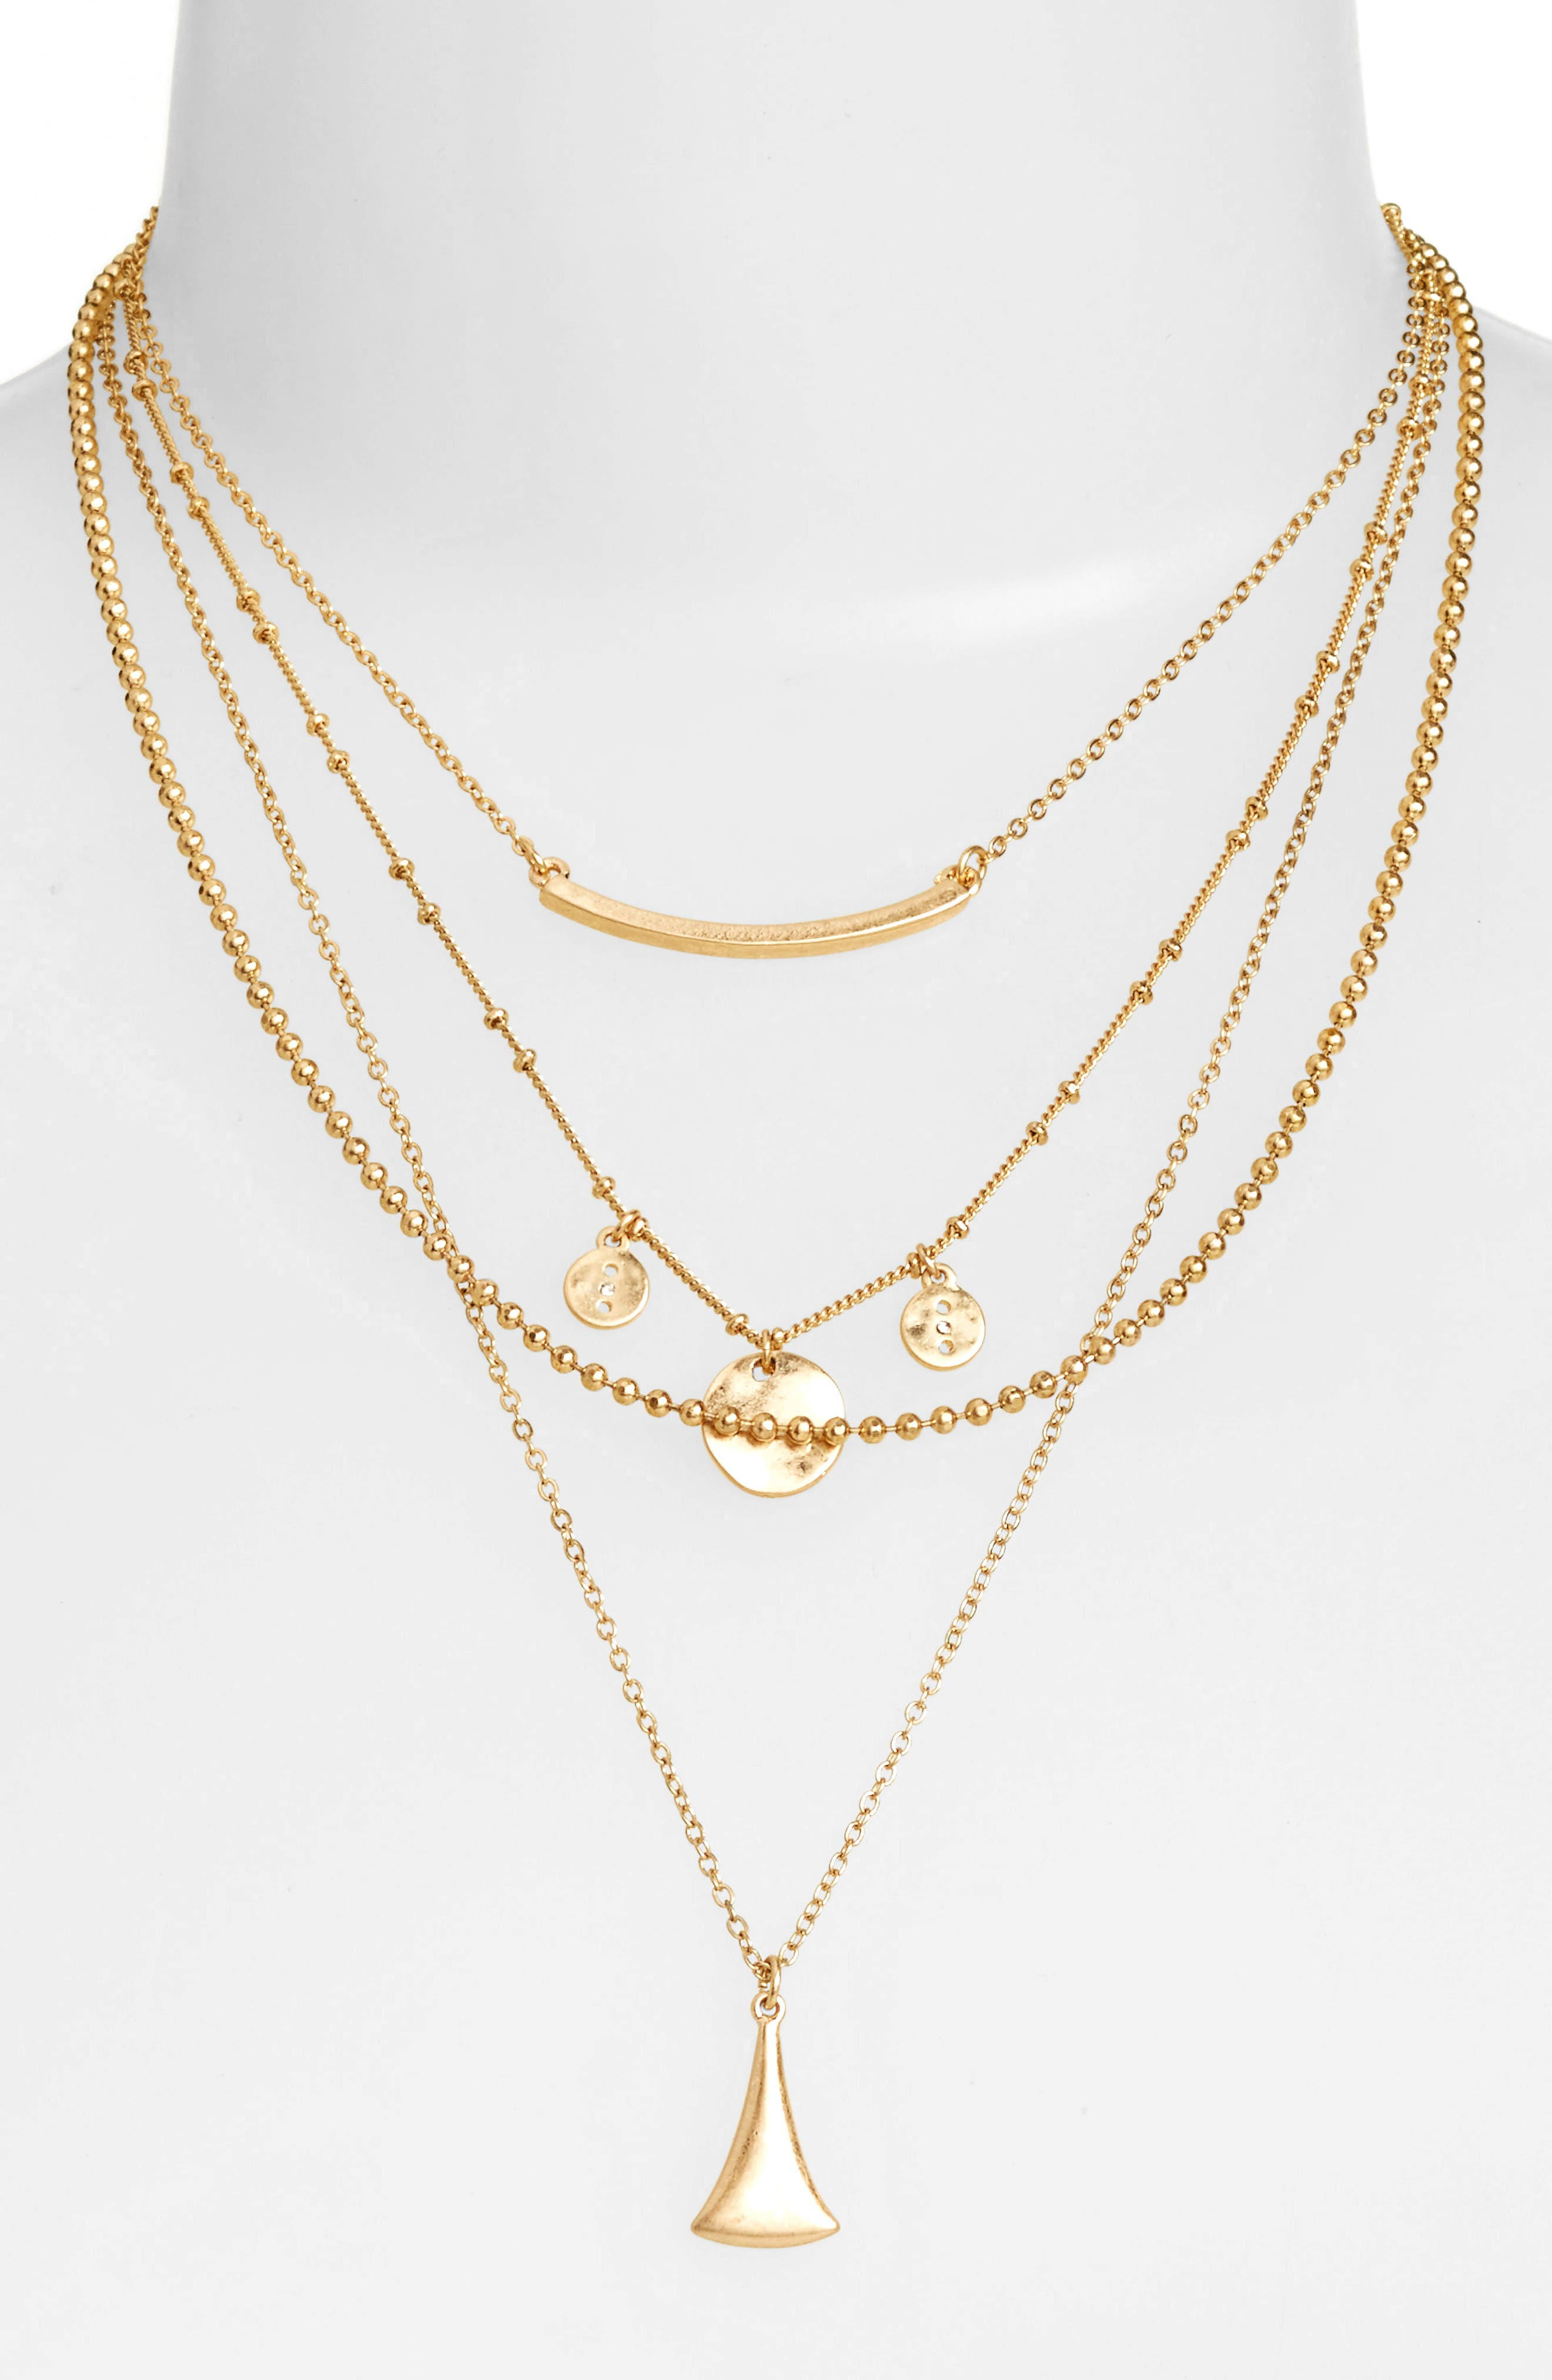 Multistrand Necklace,                             Main thumbnail 1, color,                             Gold